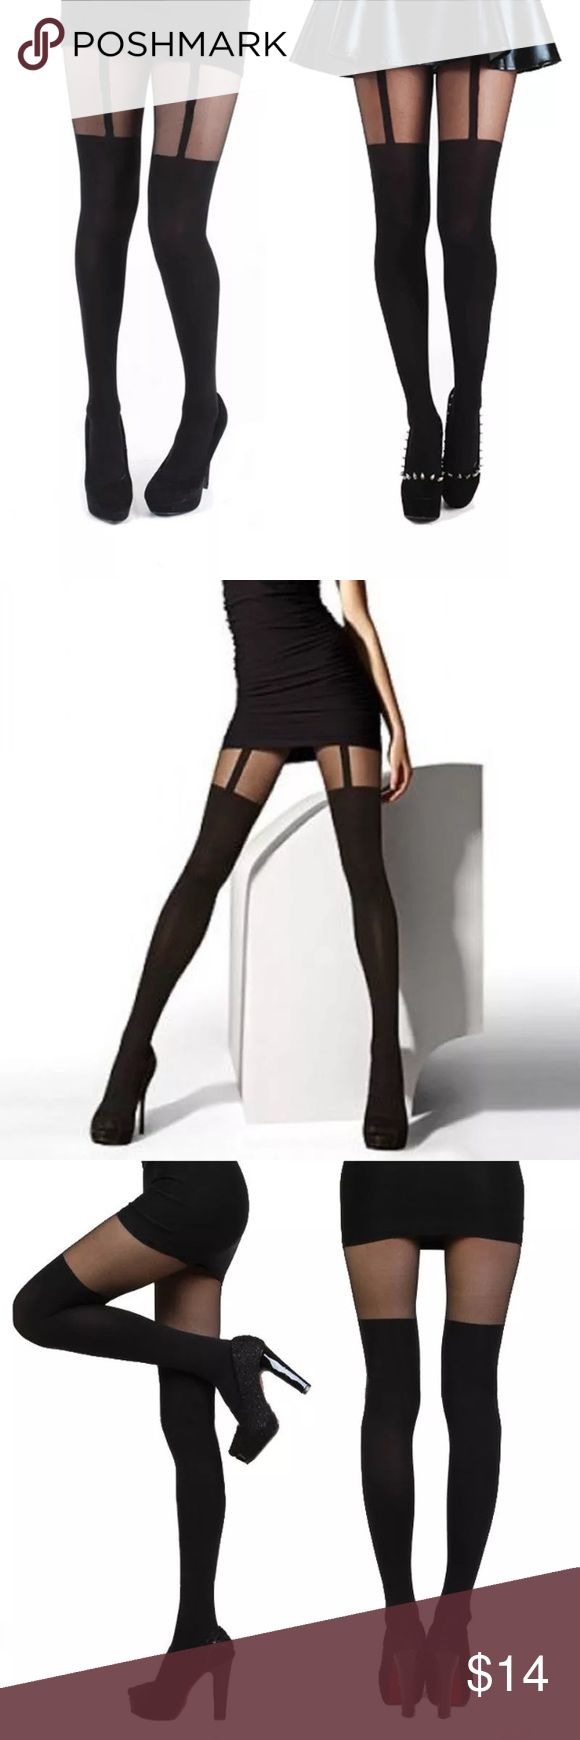 JUST IN sexy black tights w/garter look (S10) NEW sexy black pantyhose tights with garter look...brand new fits XS Accessories Hosiery & Socks